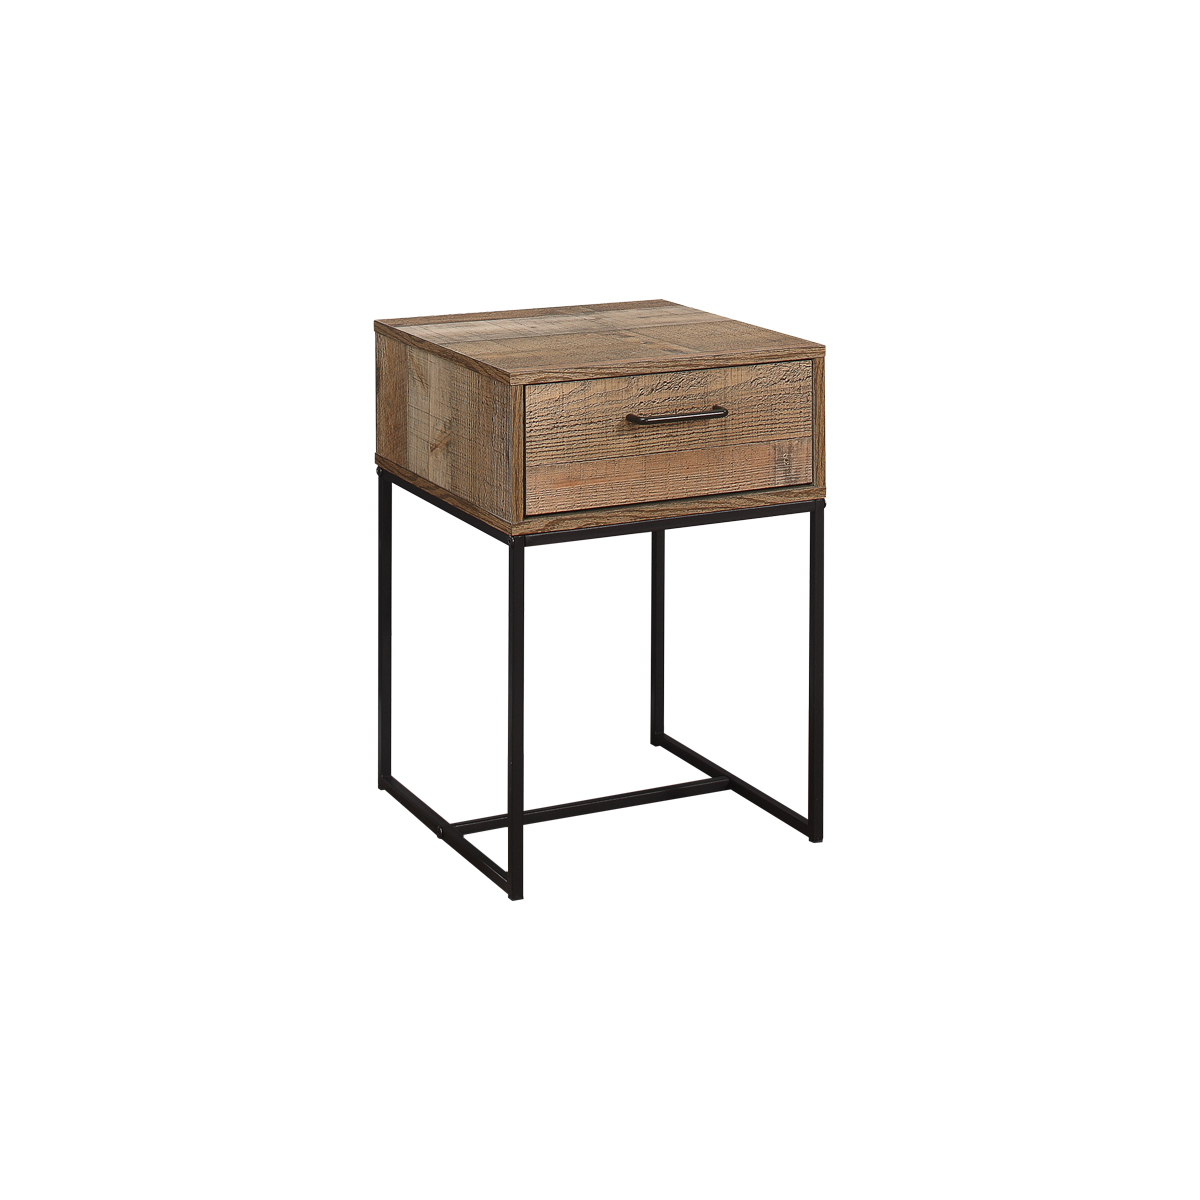 Urban 1 Drawer Narrow Bedside Assembly Instructions (Birlea)